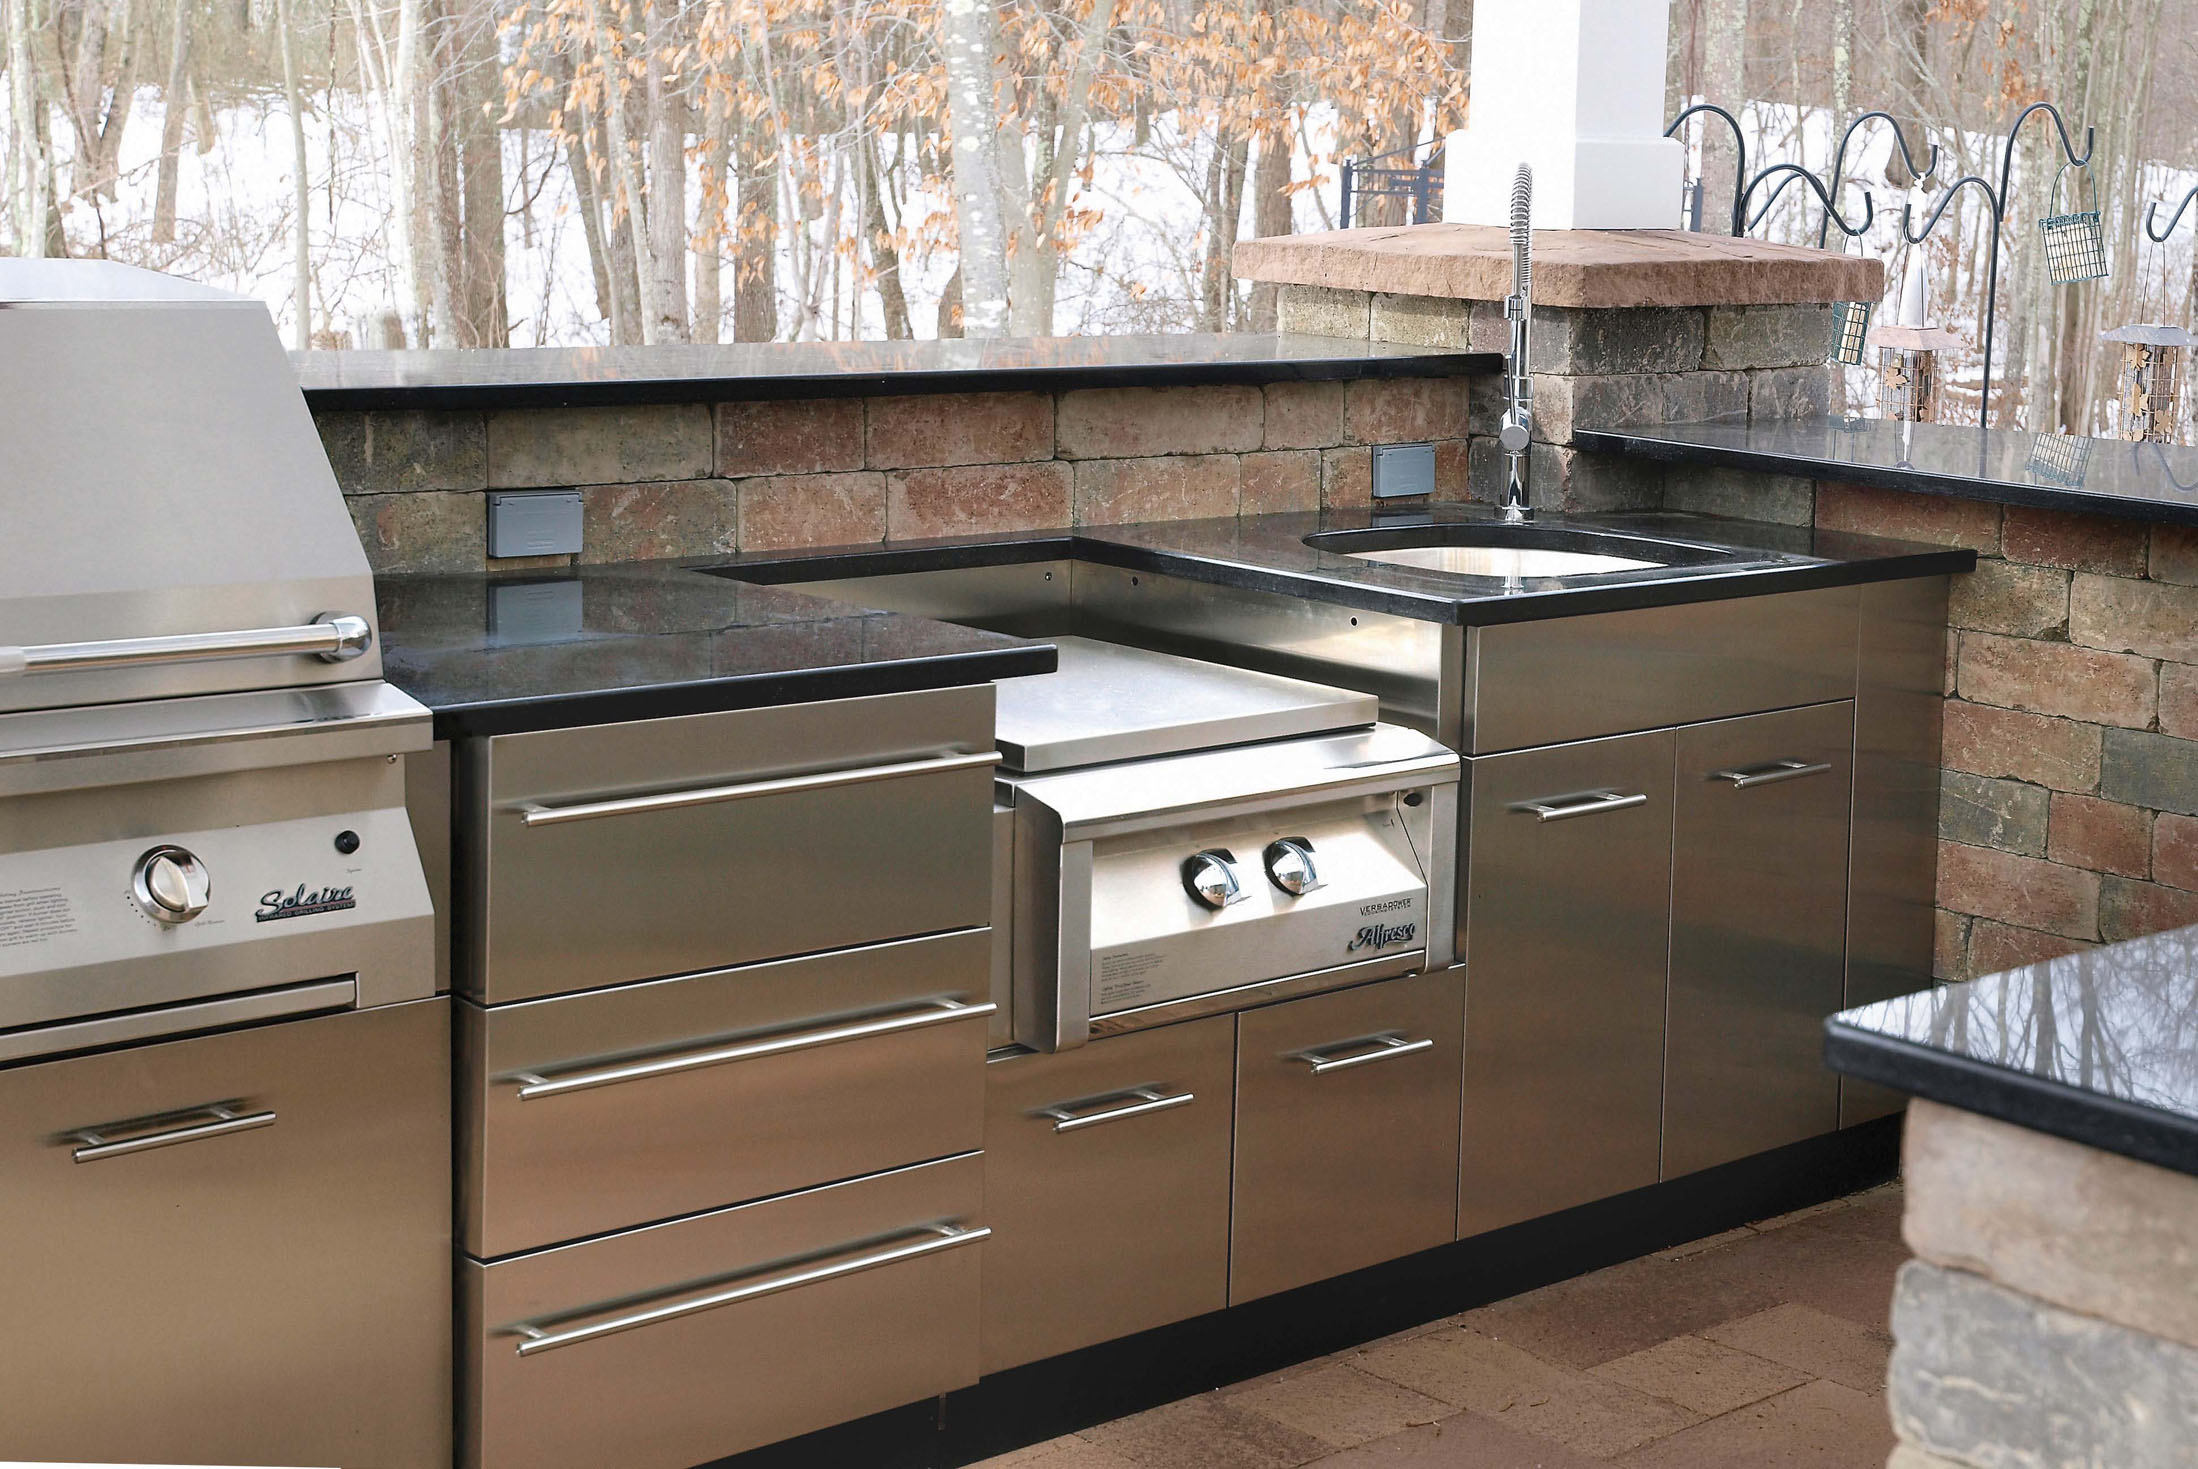 Outdoor stainless kitchen in winter in ct danver for Kitchen stainless steel cabinets